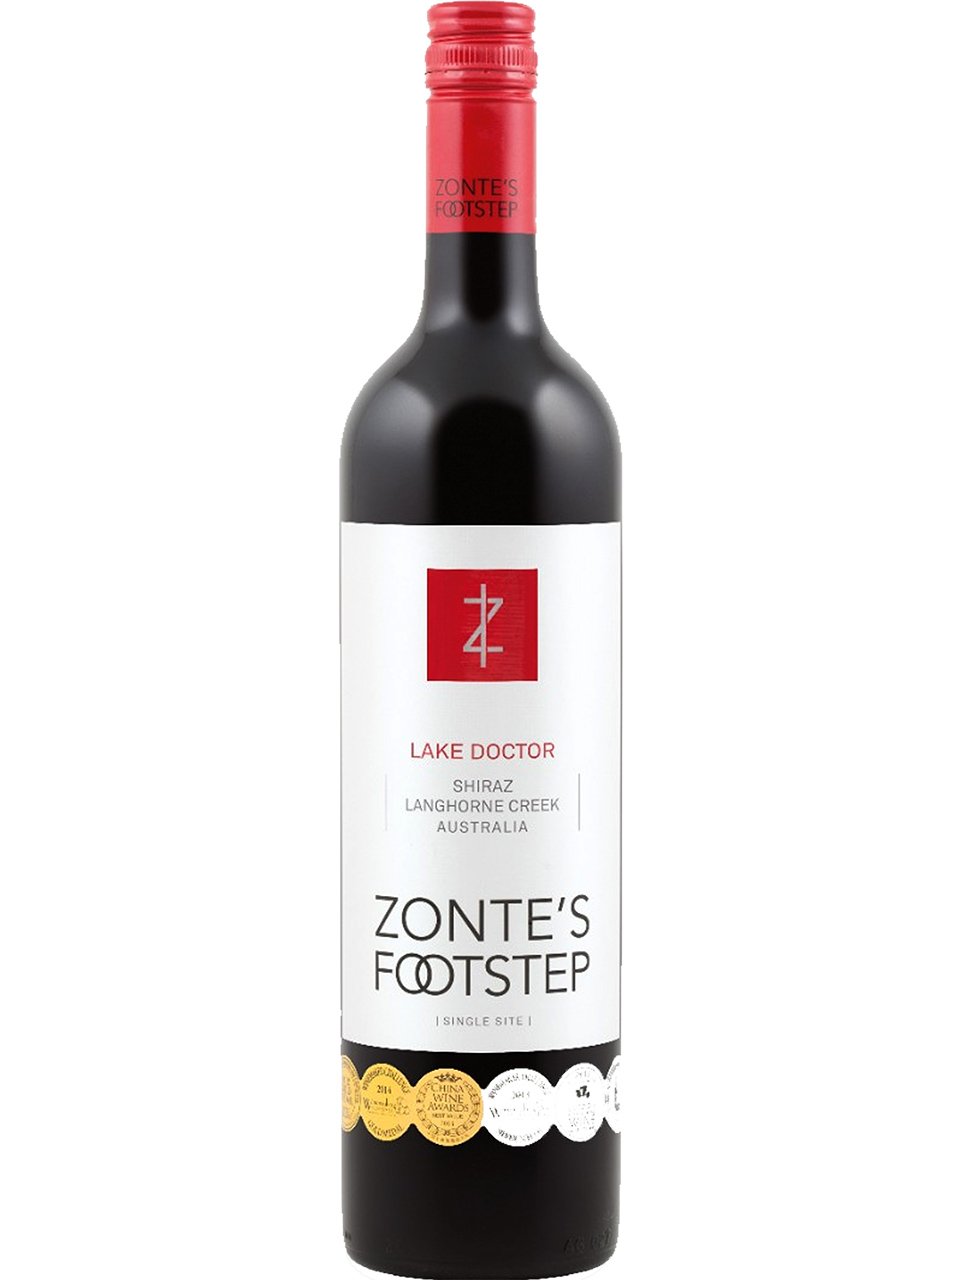 Zonte's Footstep Lake Doctor Shiraz